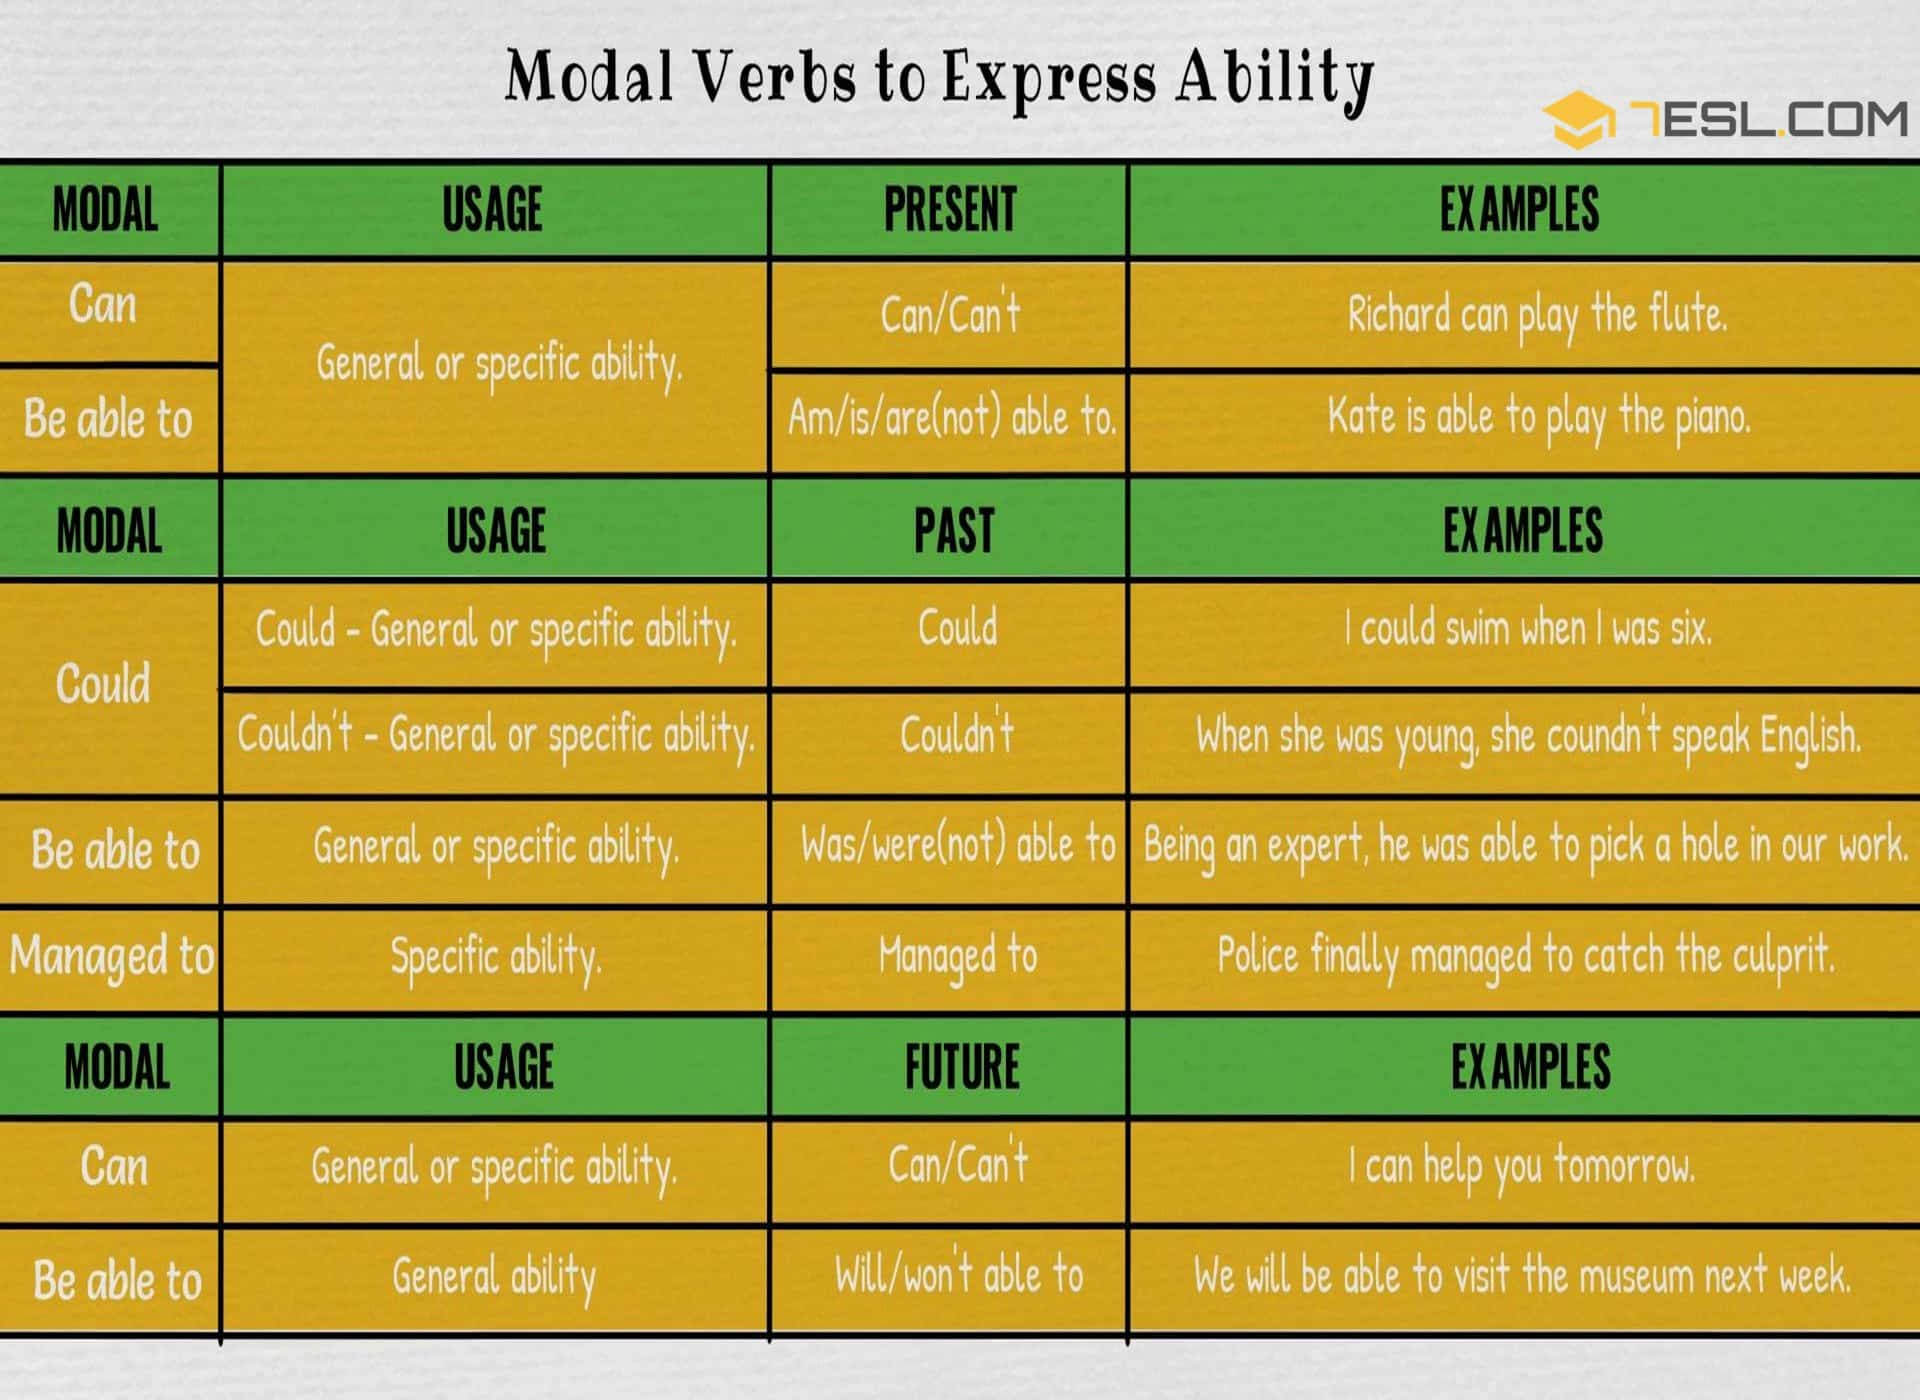 Modal Verbs To Express Ability | Modals of Ability